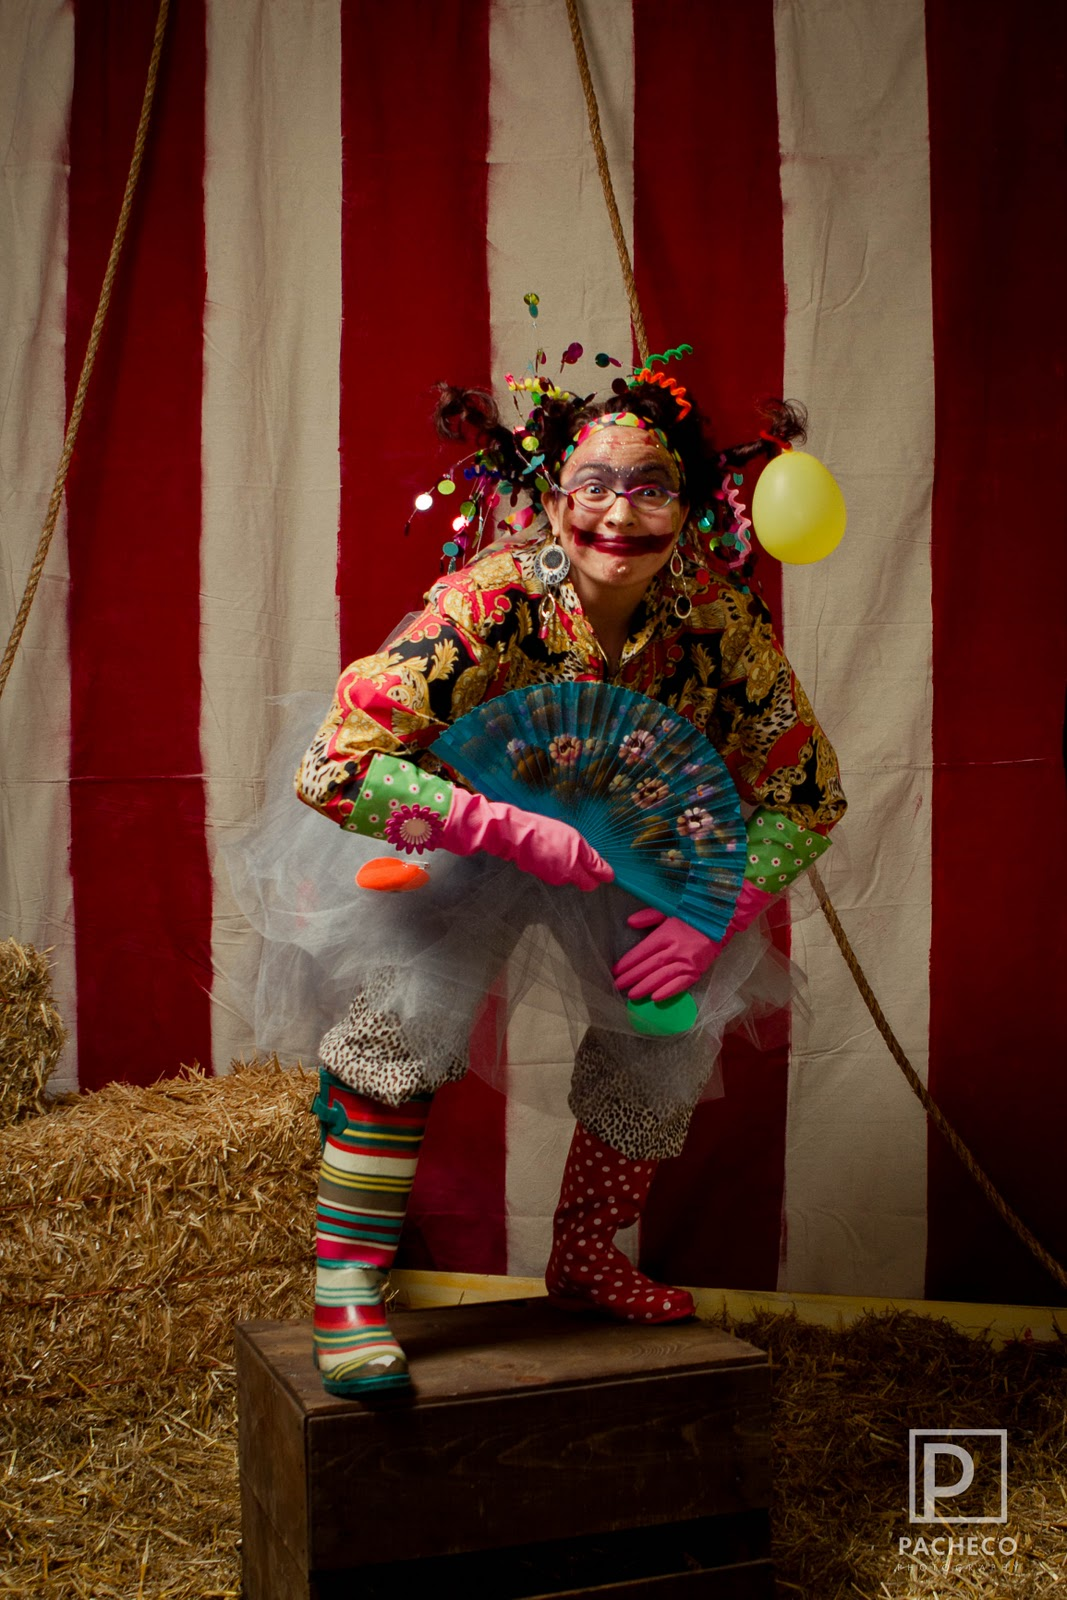 Go Sign Up For Your Marathon...: Circus Freaks